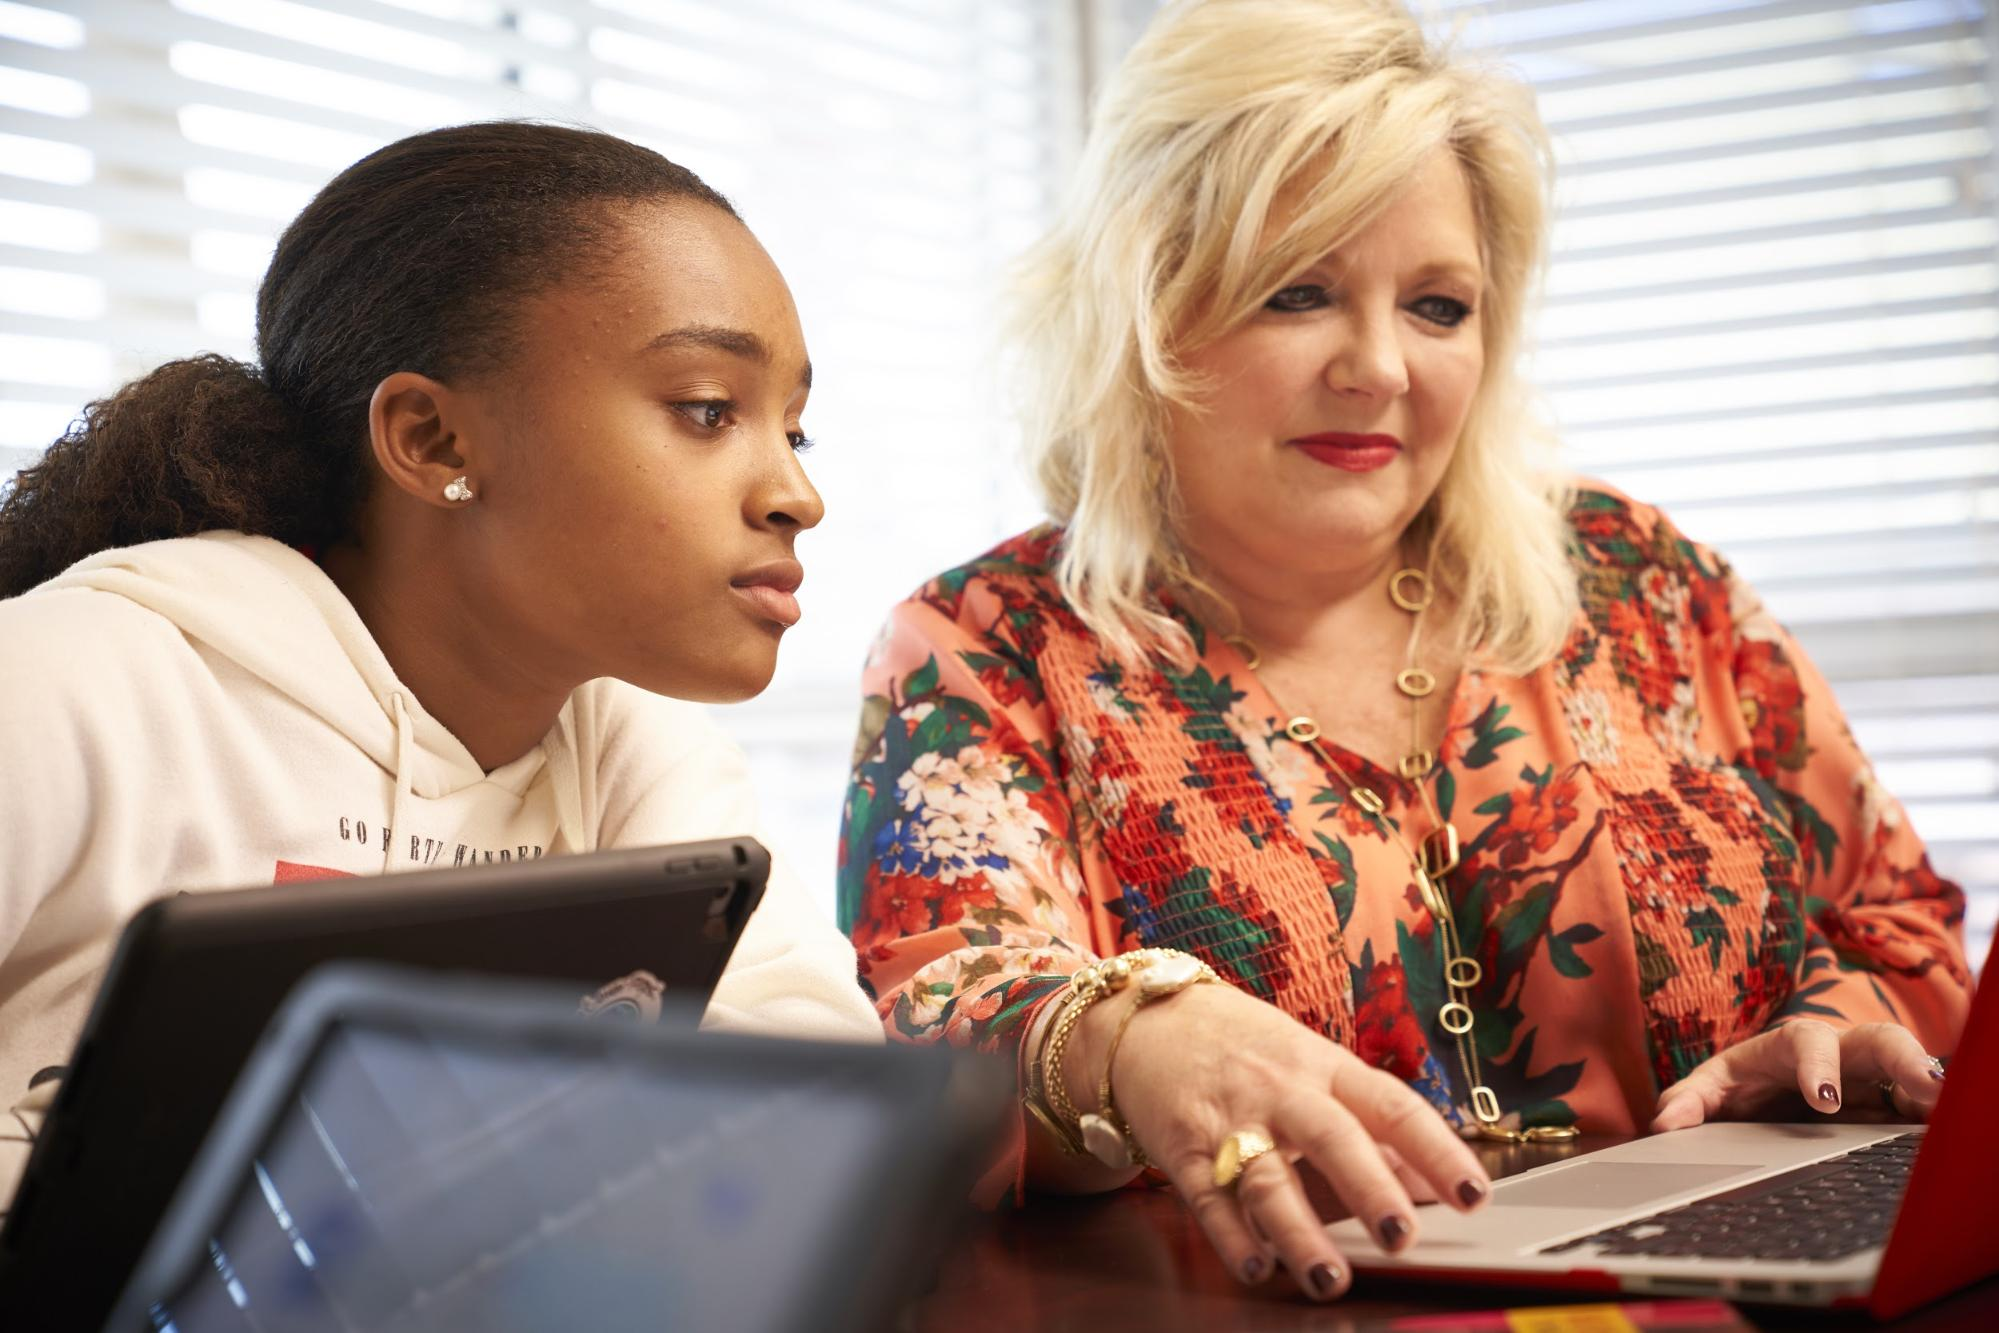 Student looking over teacher's shoulder at laptop